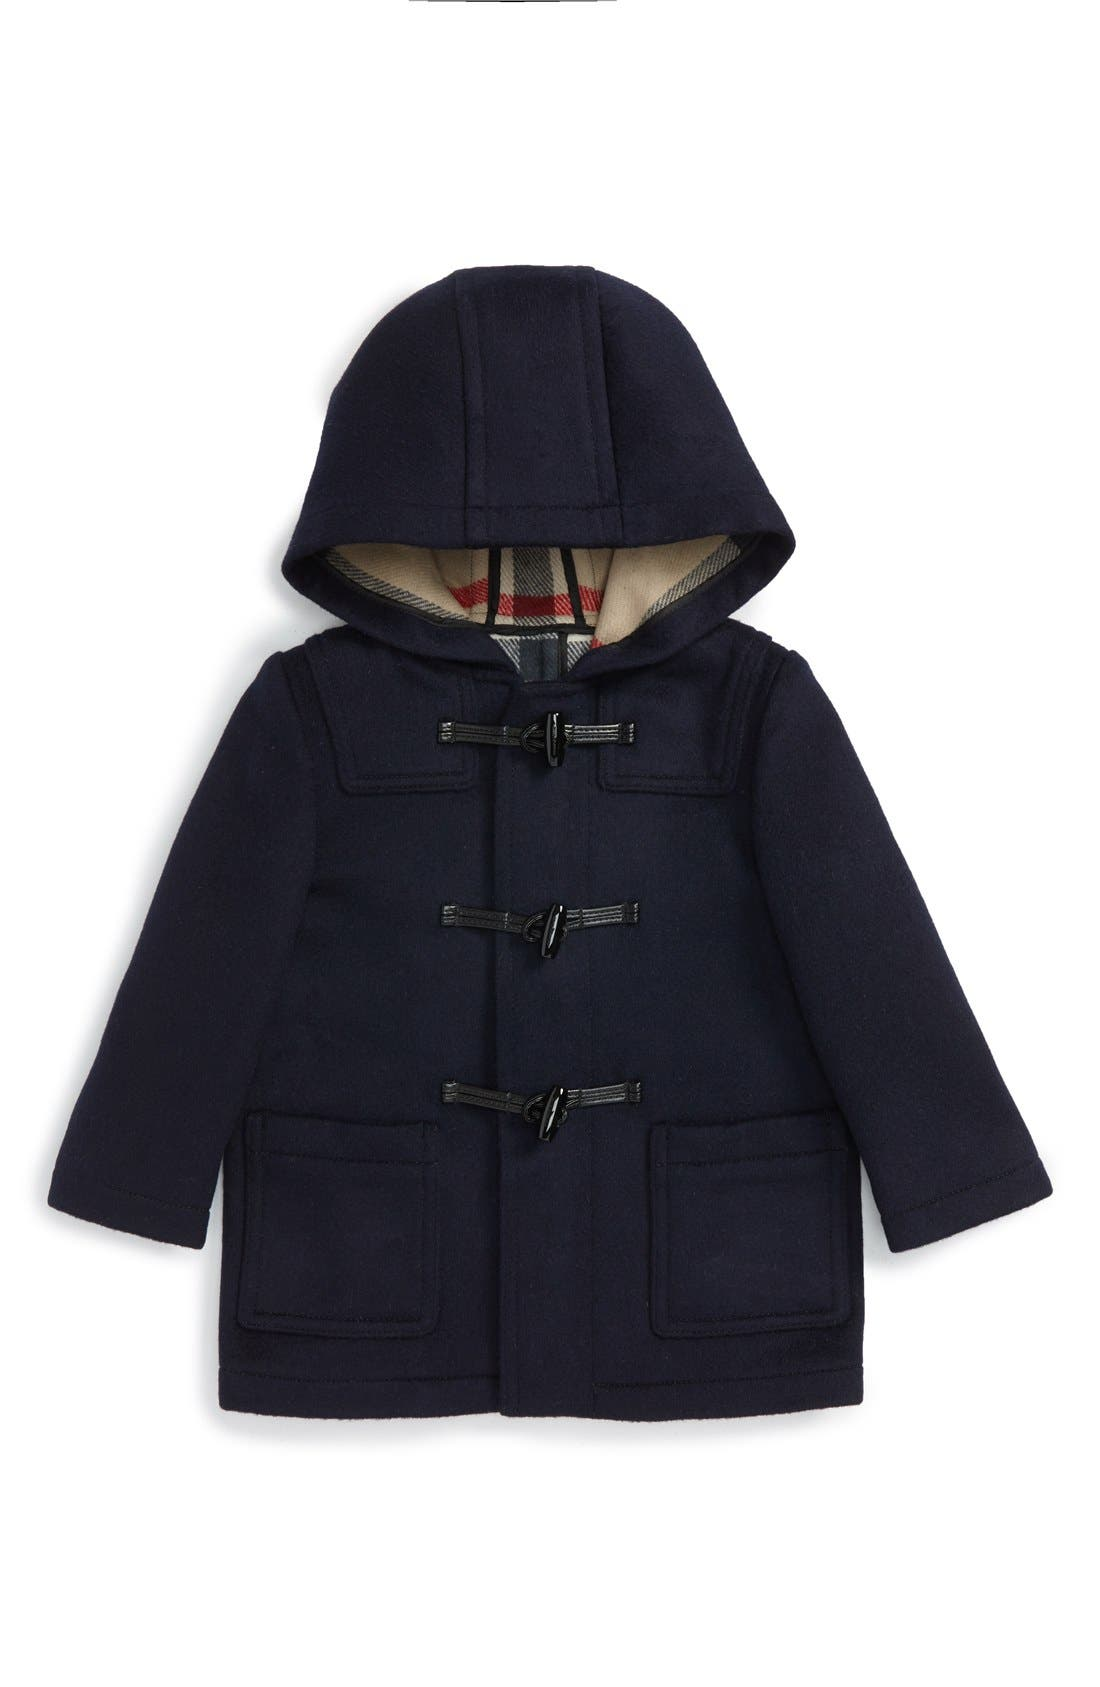 Main Image - Burberry 'Brogan' Hooded Wool Toggle Coat (Toddler Boys)